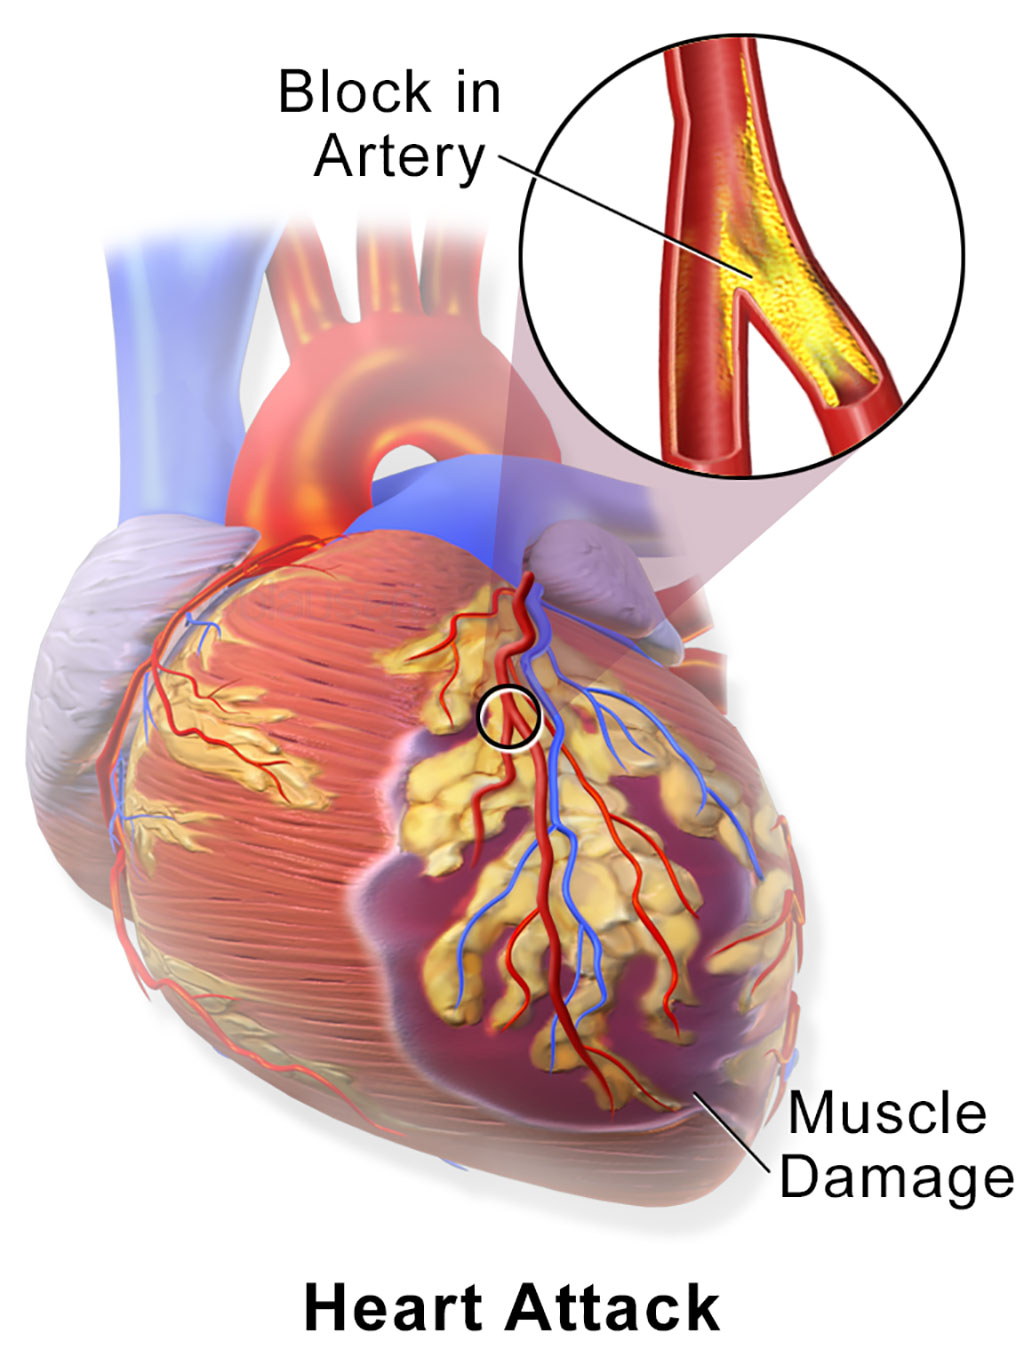 Image: A myocardial infarction (MI), commonly known as a heart attack, occurs when blood flow decreases or stops to a part of the heart, causing damage to the heart muscle (Photo courtesy of Wikimedia Commons)